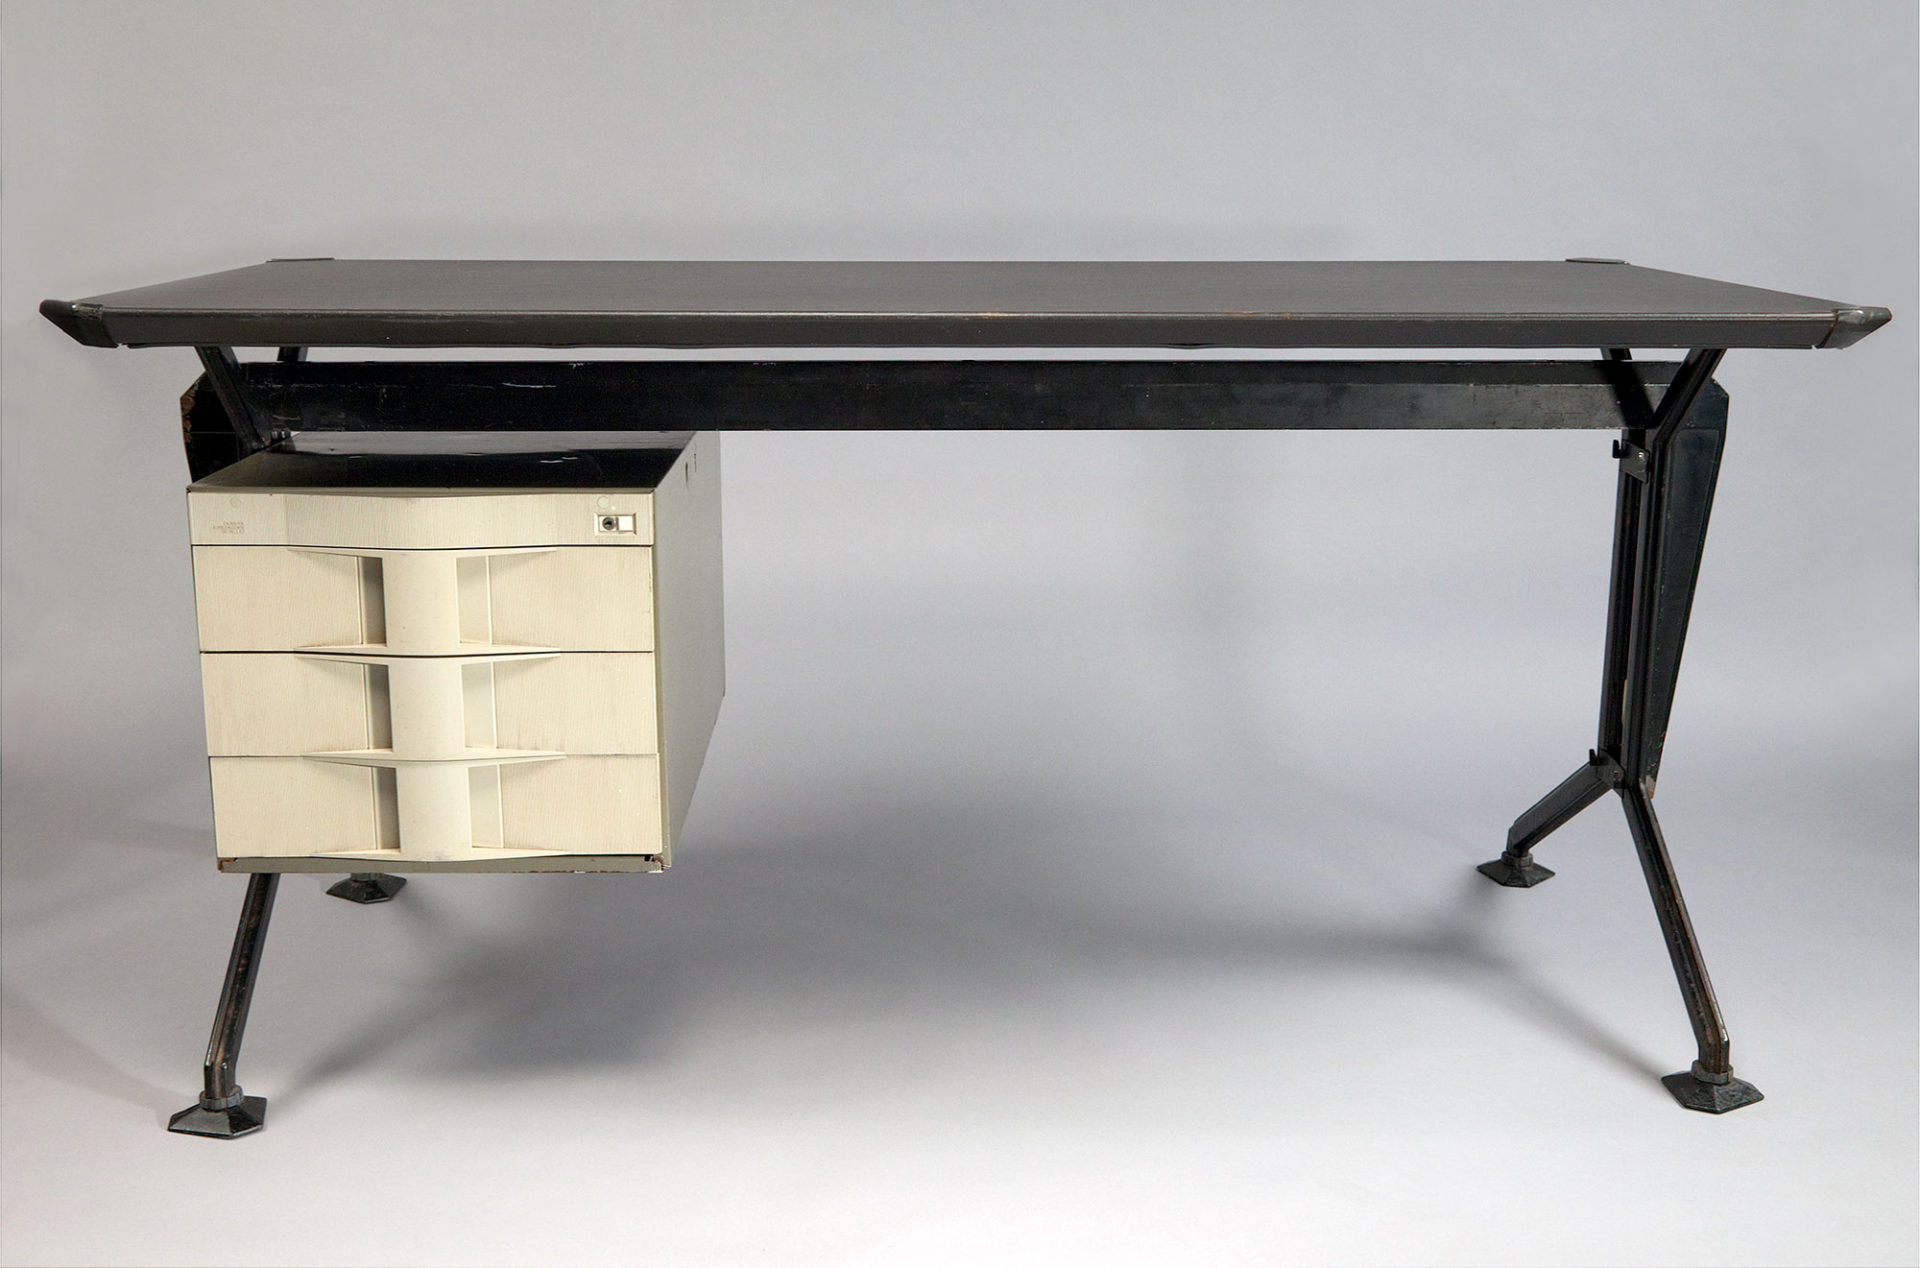 Desk with rectangular plywood top supported by an angular steel frame with a white drawer unit suspended on the left side.